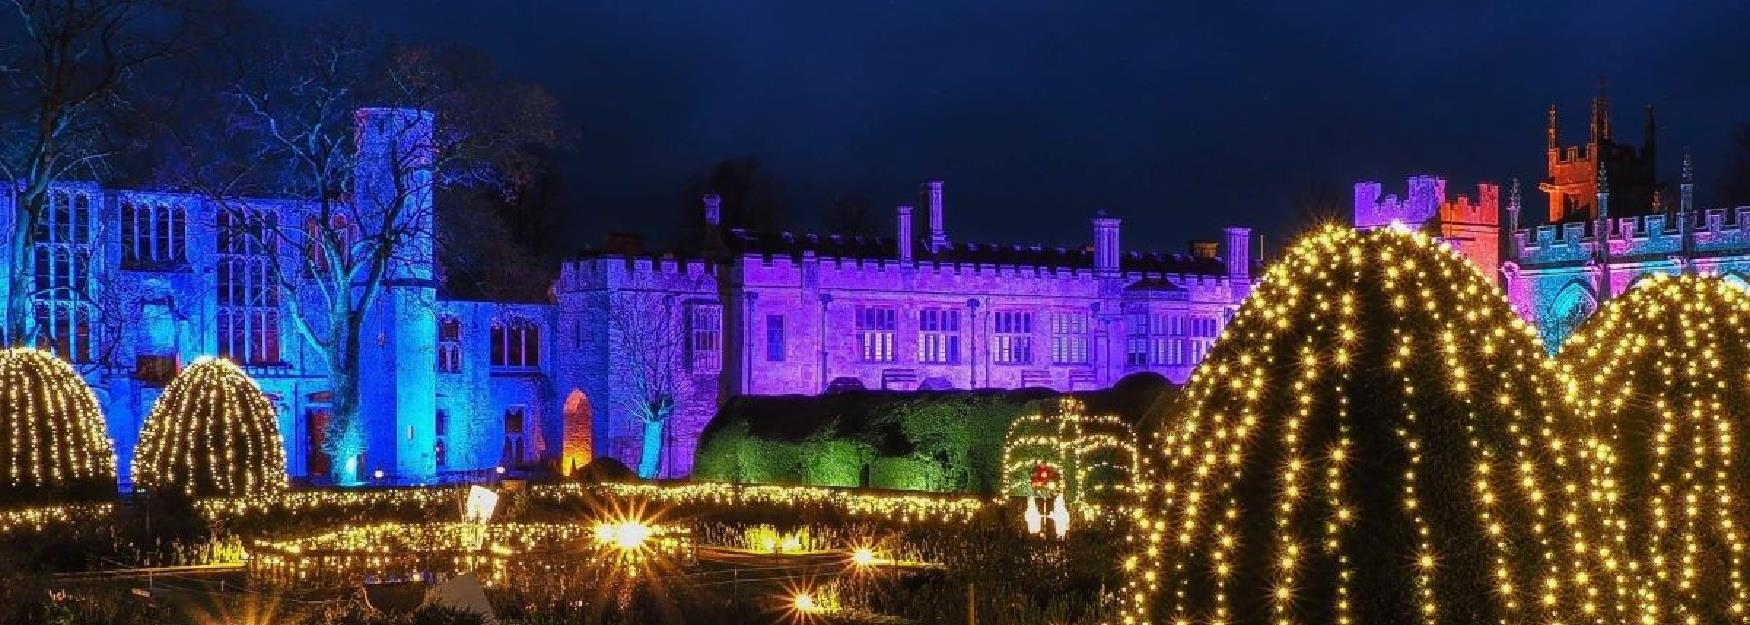 Spectacle of Light, Sudeley Castle